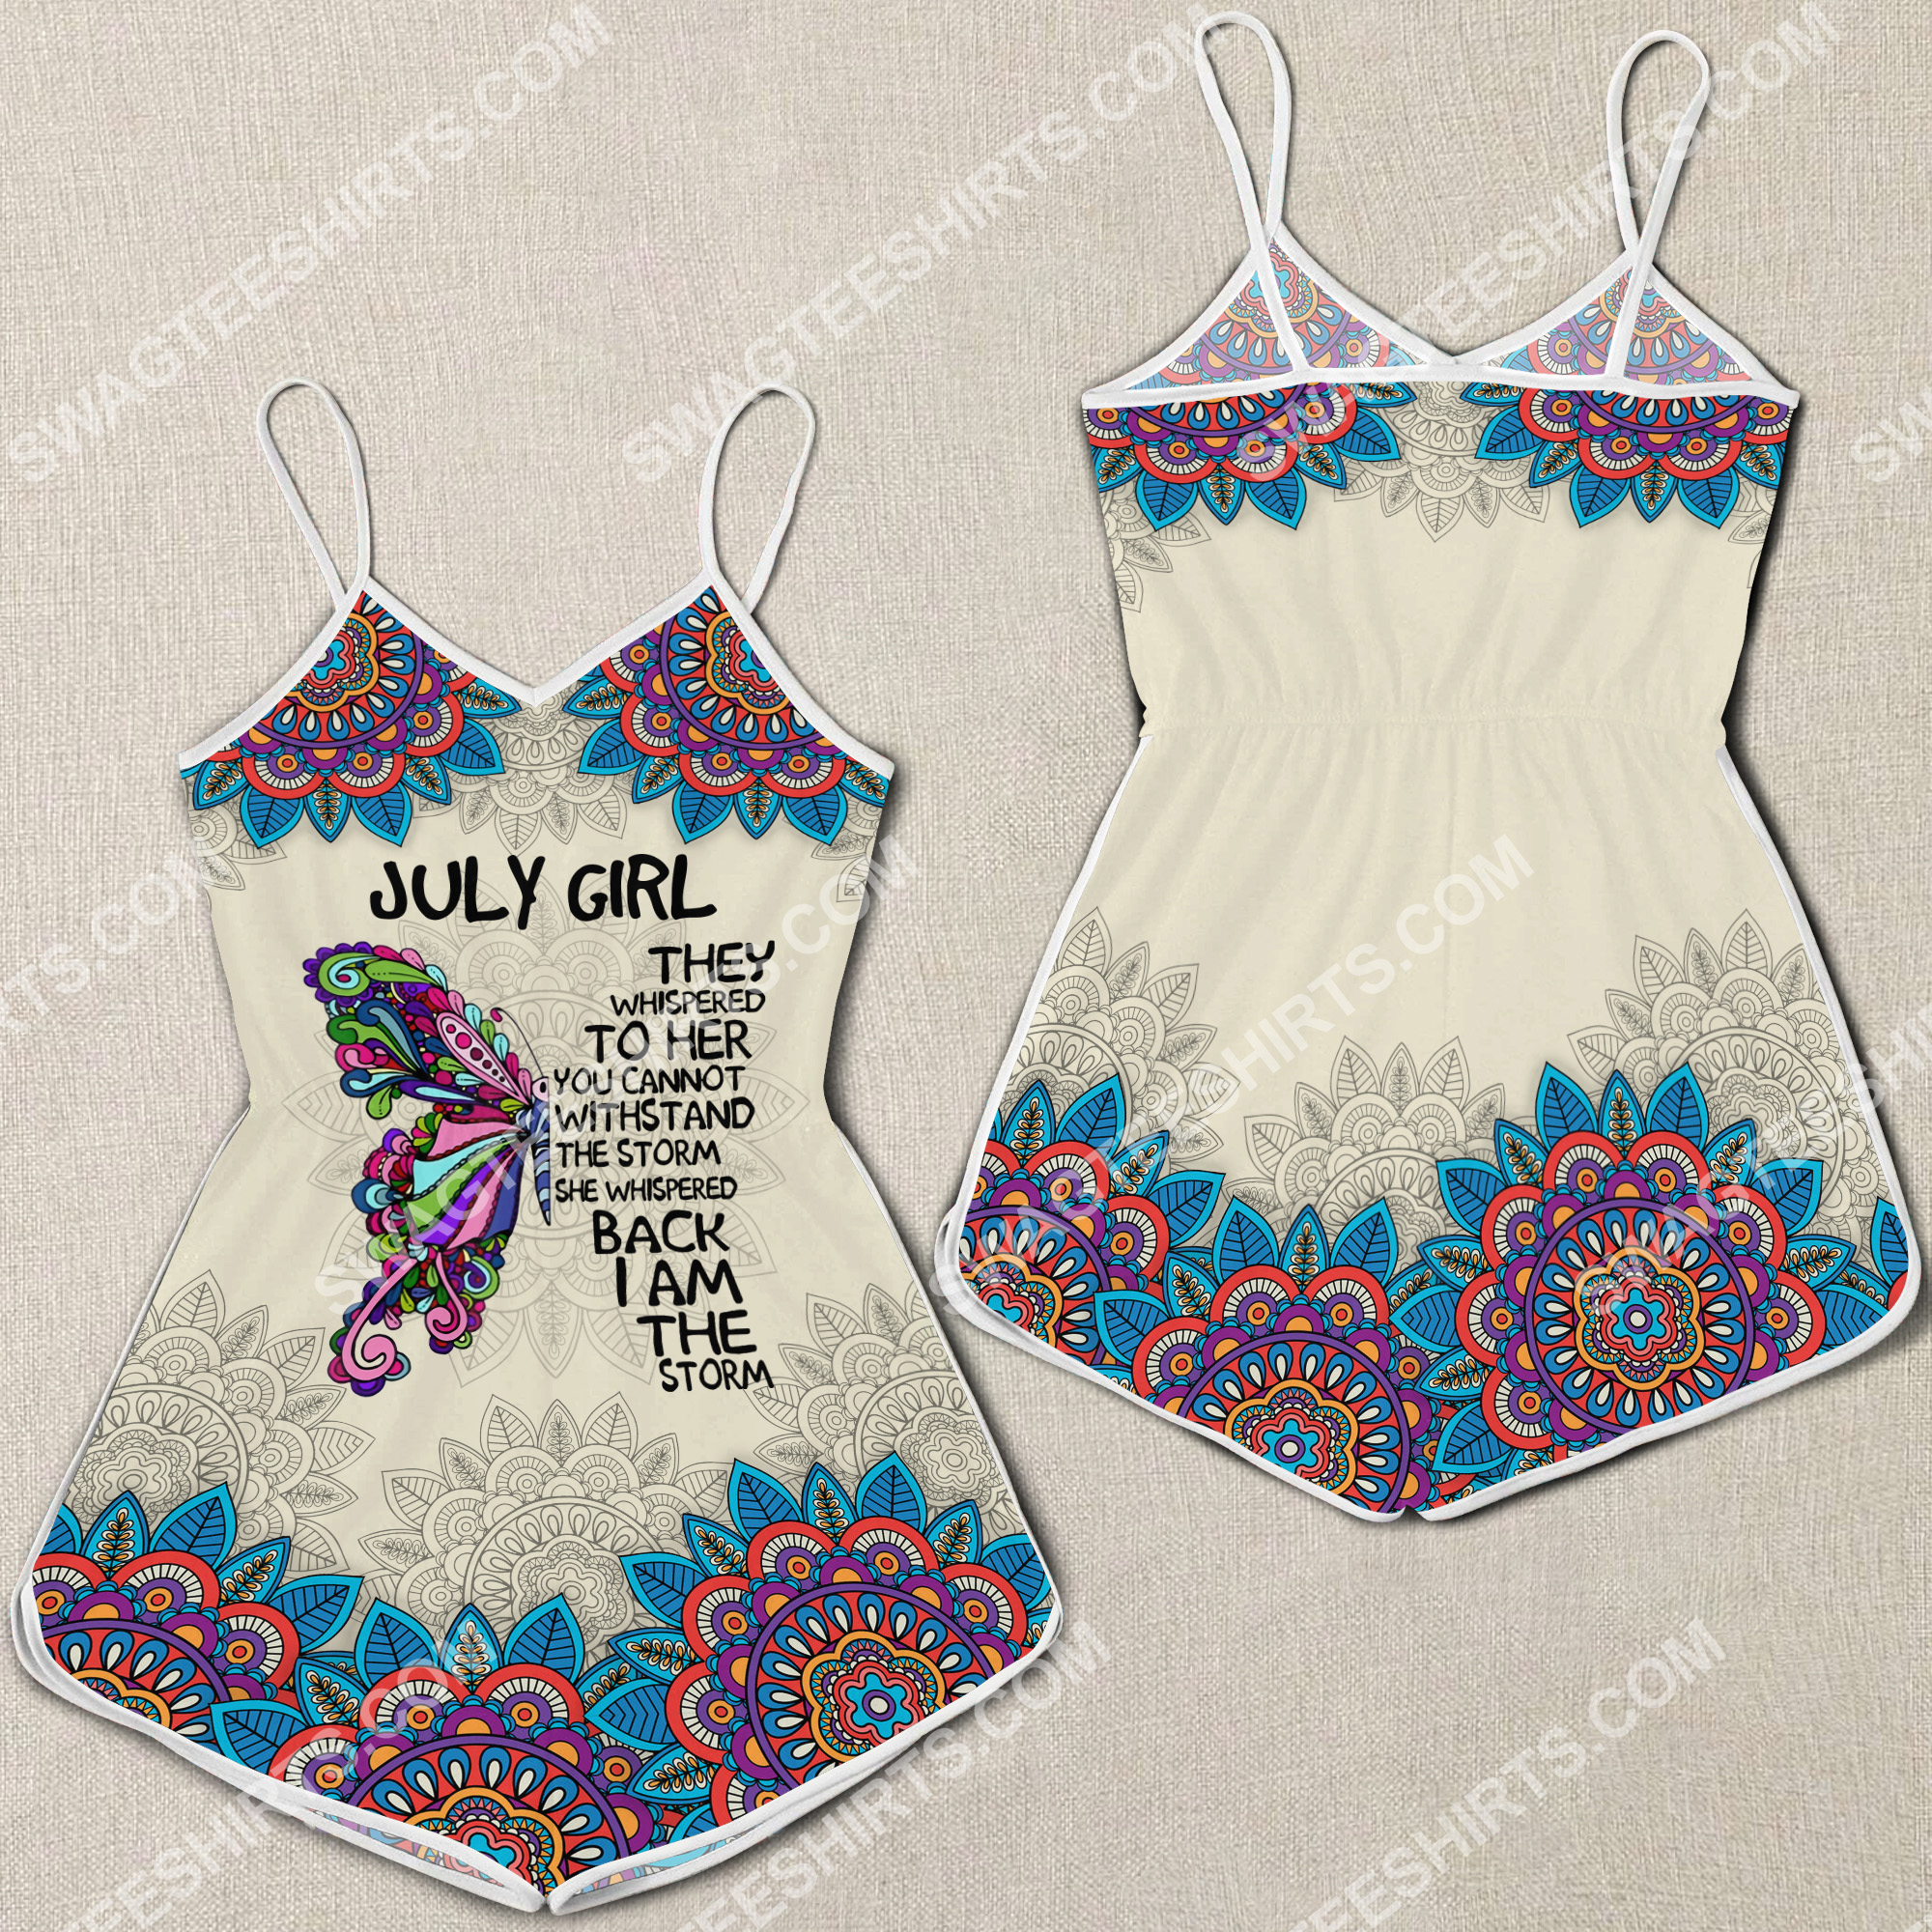 july girl they whispered to her you cannot withstand the storm rompers 2(1) - Copy